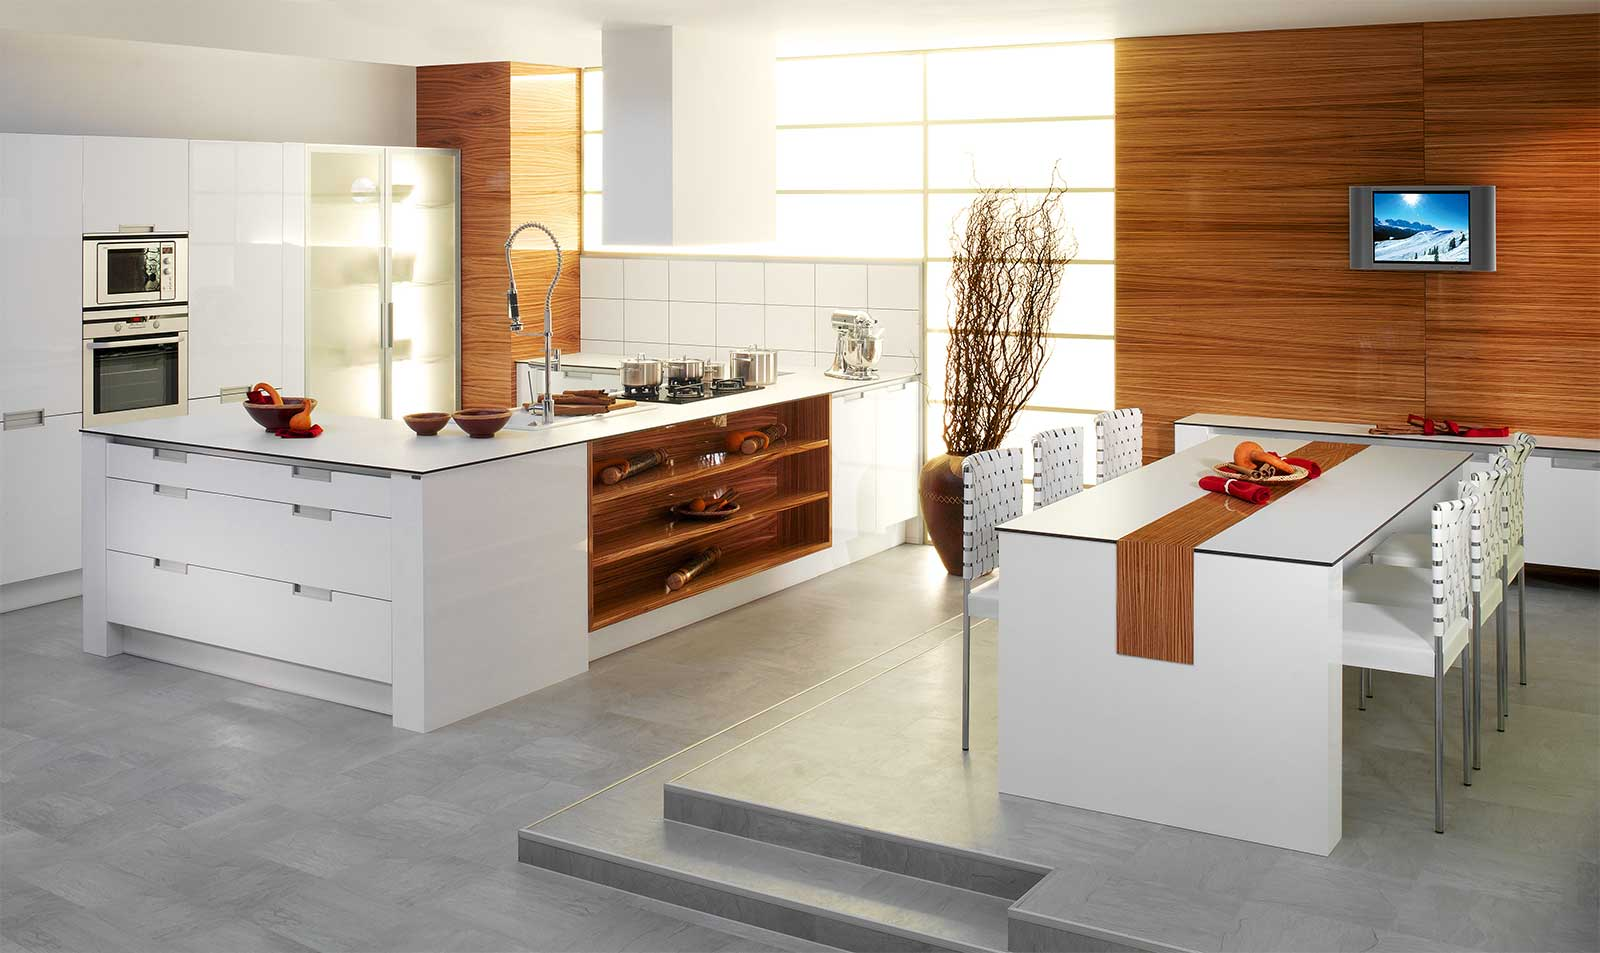 Kitchen-remodel-and-renovation-with-stone-flooring